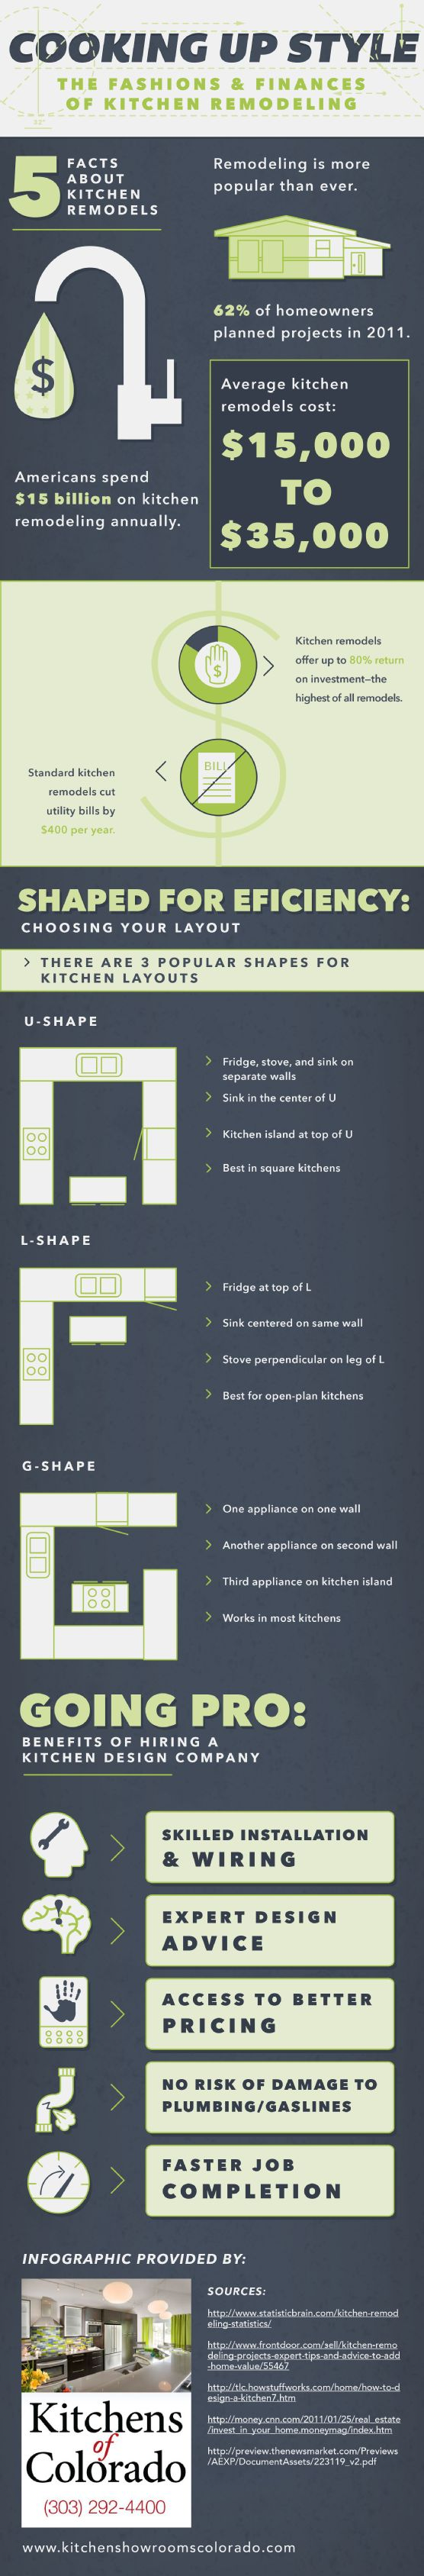 How To Finance Kitchen Remodel 1000 Images About Home And Personal Finance On Pinterest Lwren